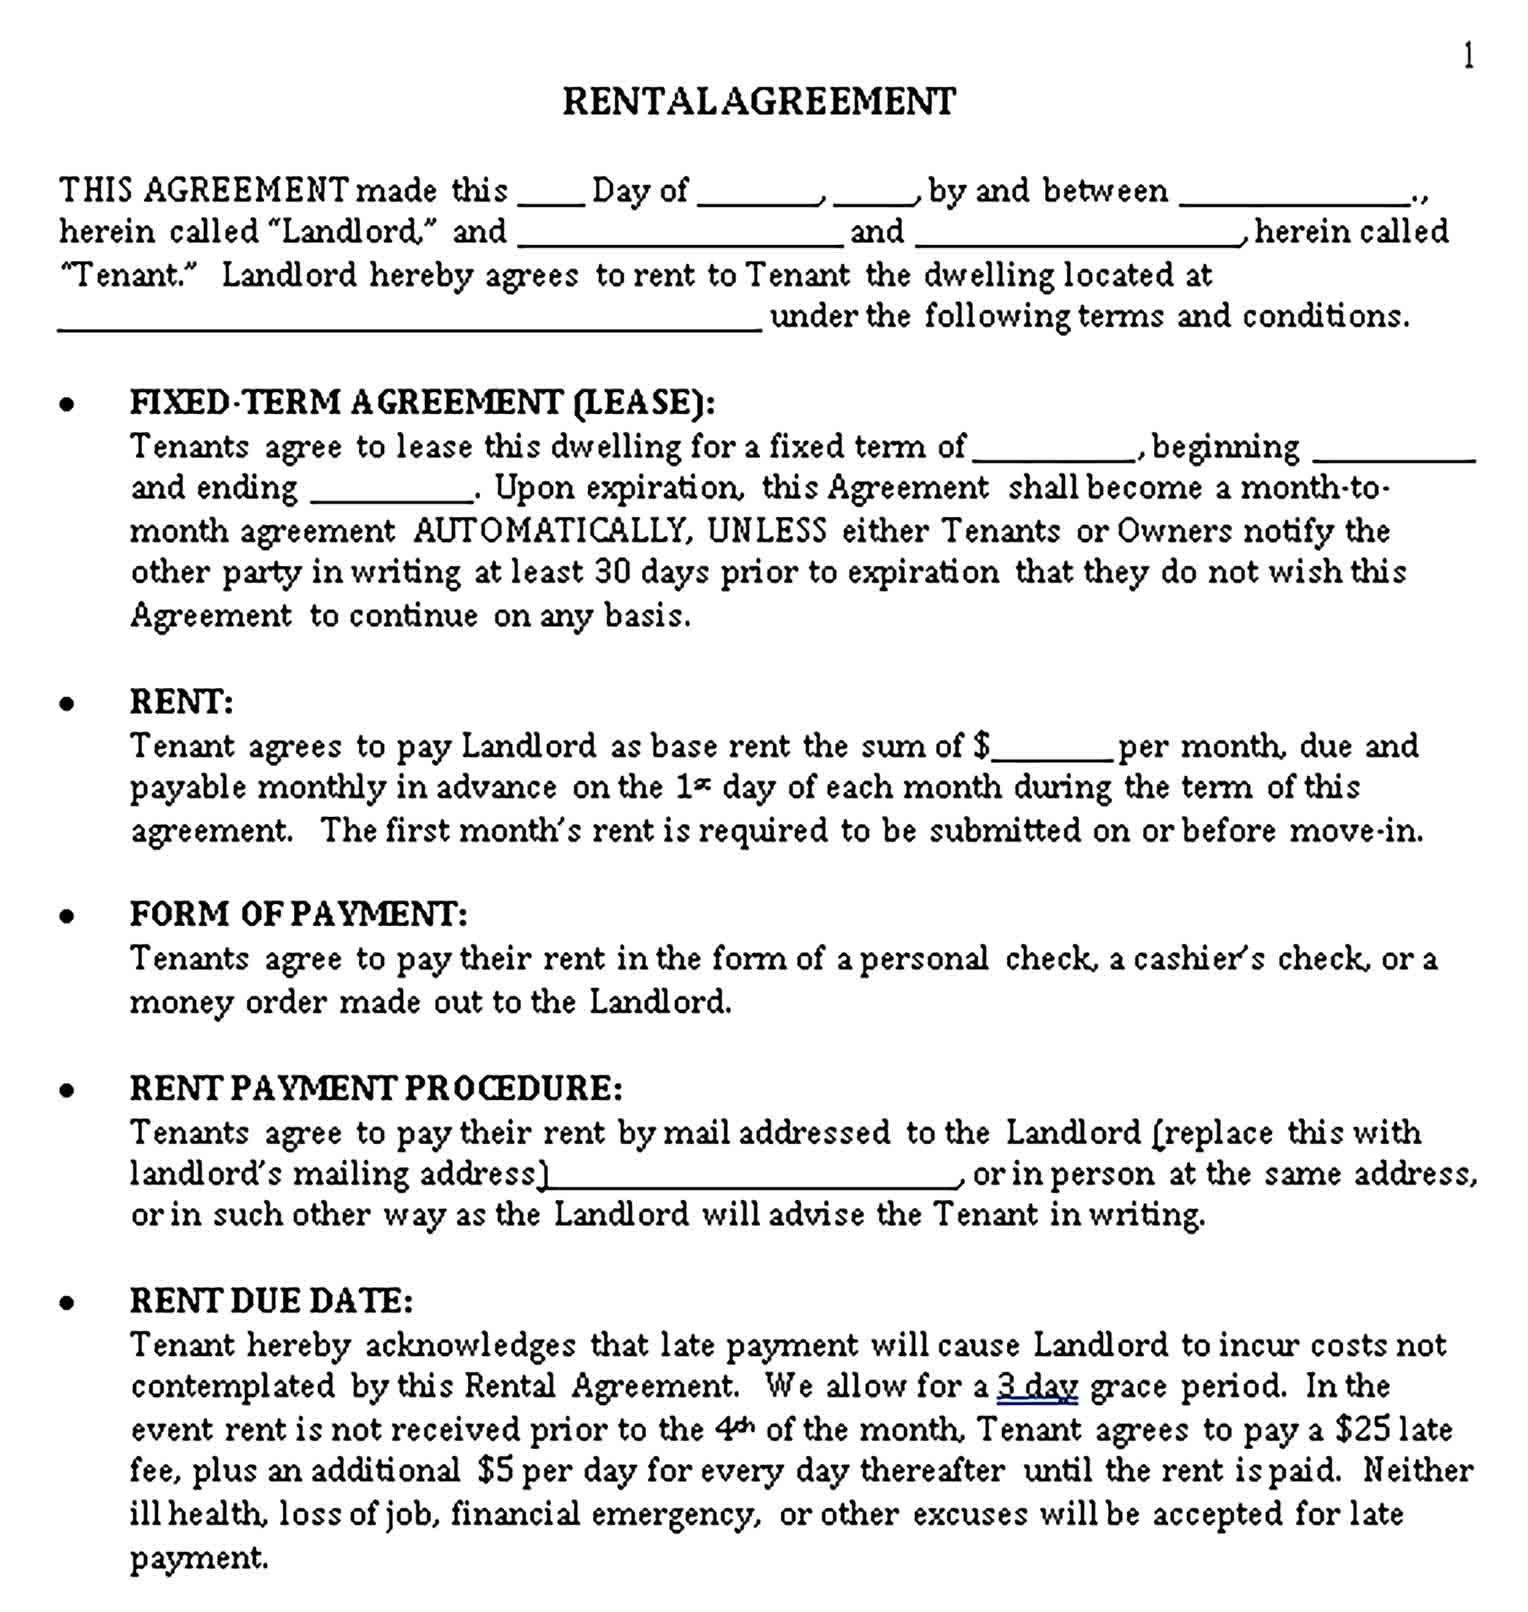 001 Simple Sample House Rental Agreement Template High Resolution  Contract LeaseFull